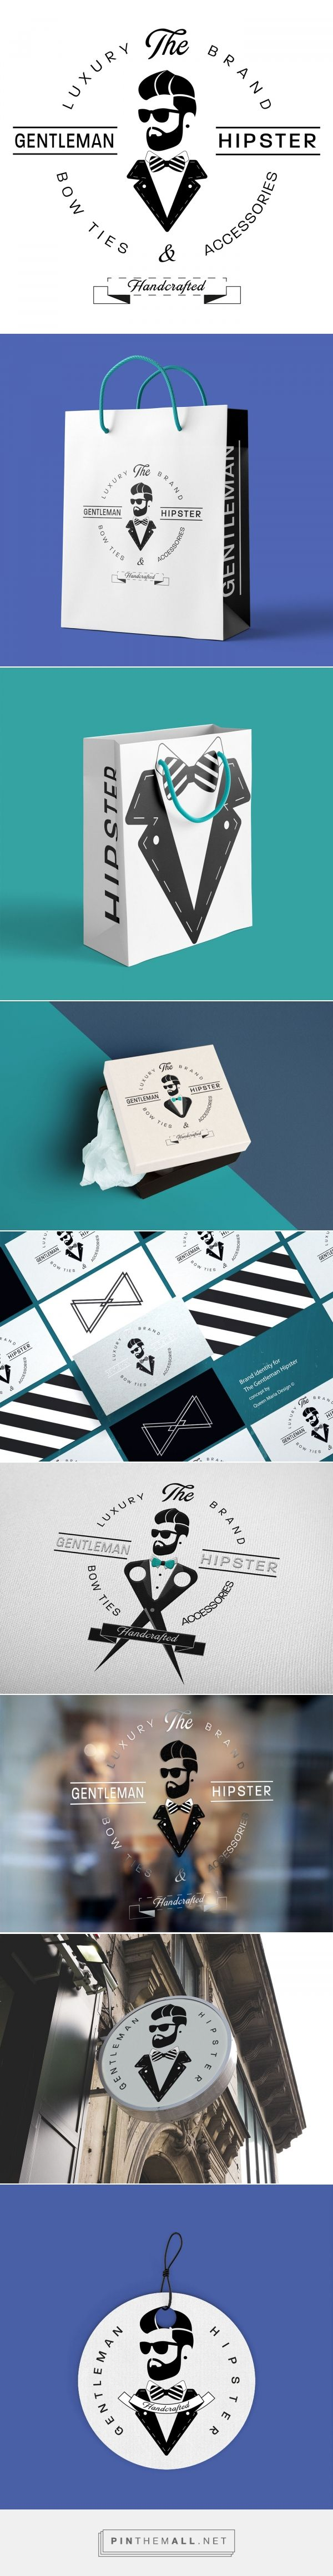 THE GENTLEMAN HIPSTER / Brand Identity on Behance - created by @queenmariadesign  via https://pinthemall.net